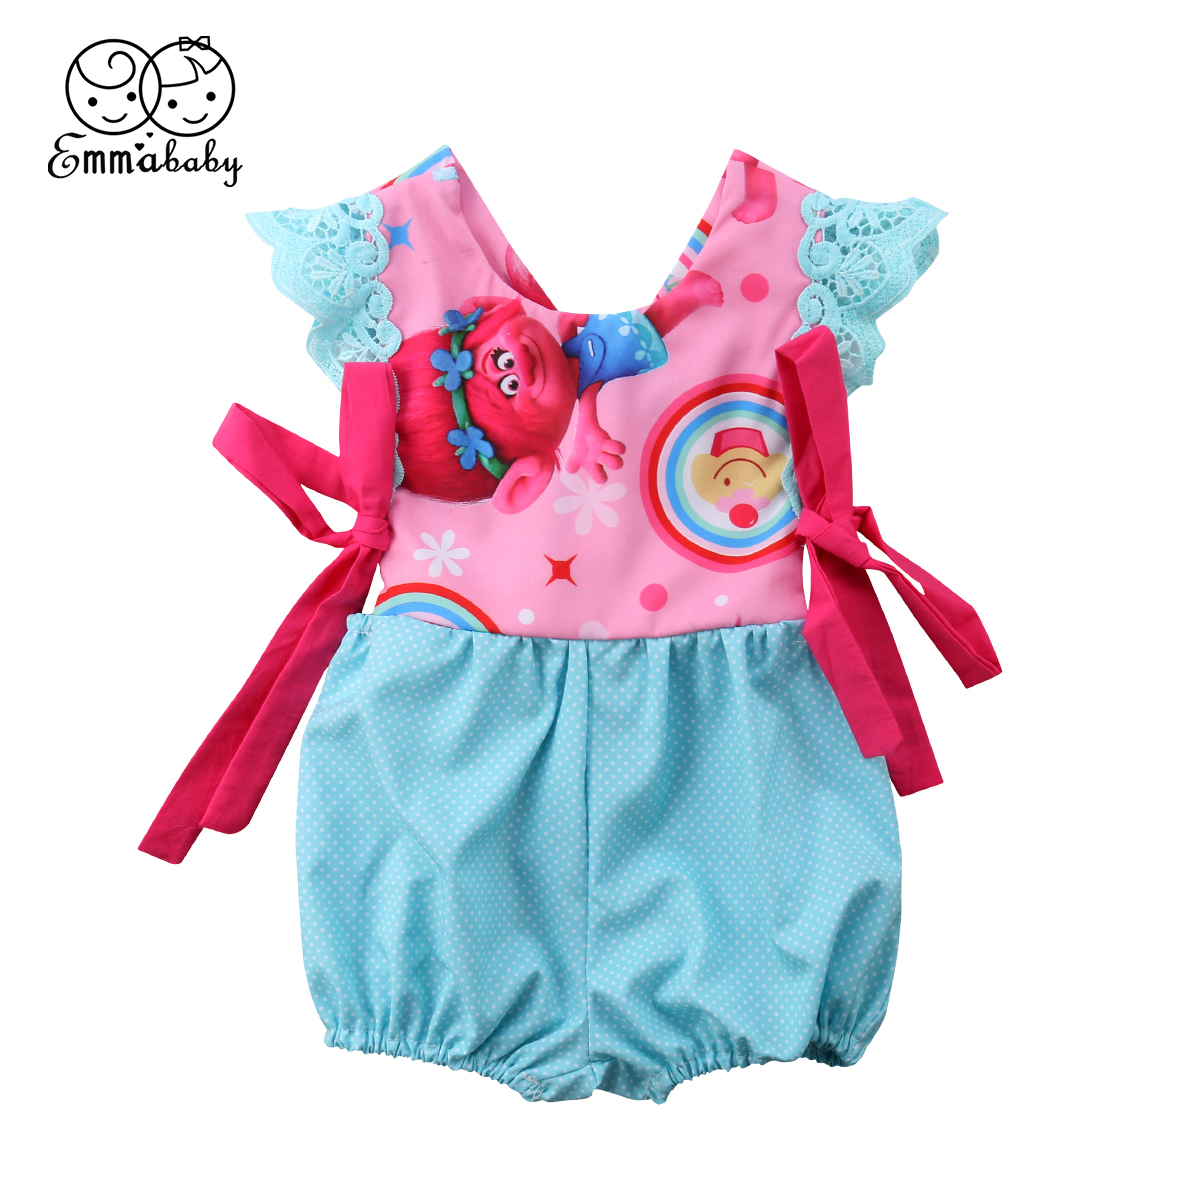 e94b1e6d219f Emmababy Newborn Baby Girl Trolls Print Fly Sleeve One Piece Bodysuit  Jumpsuit Outfits Clothes Set